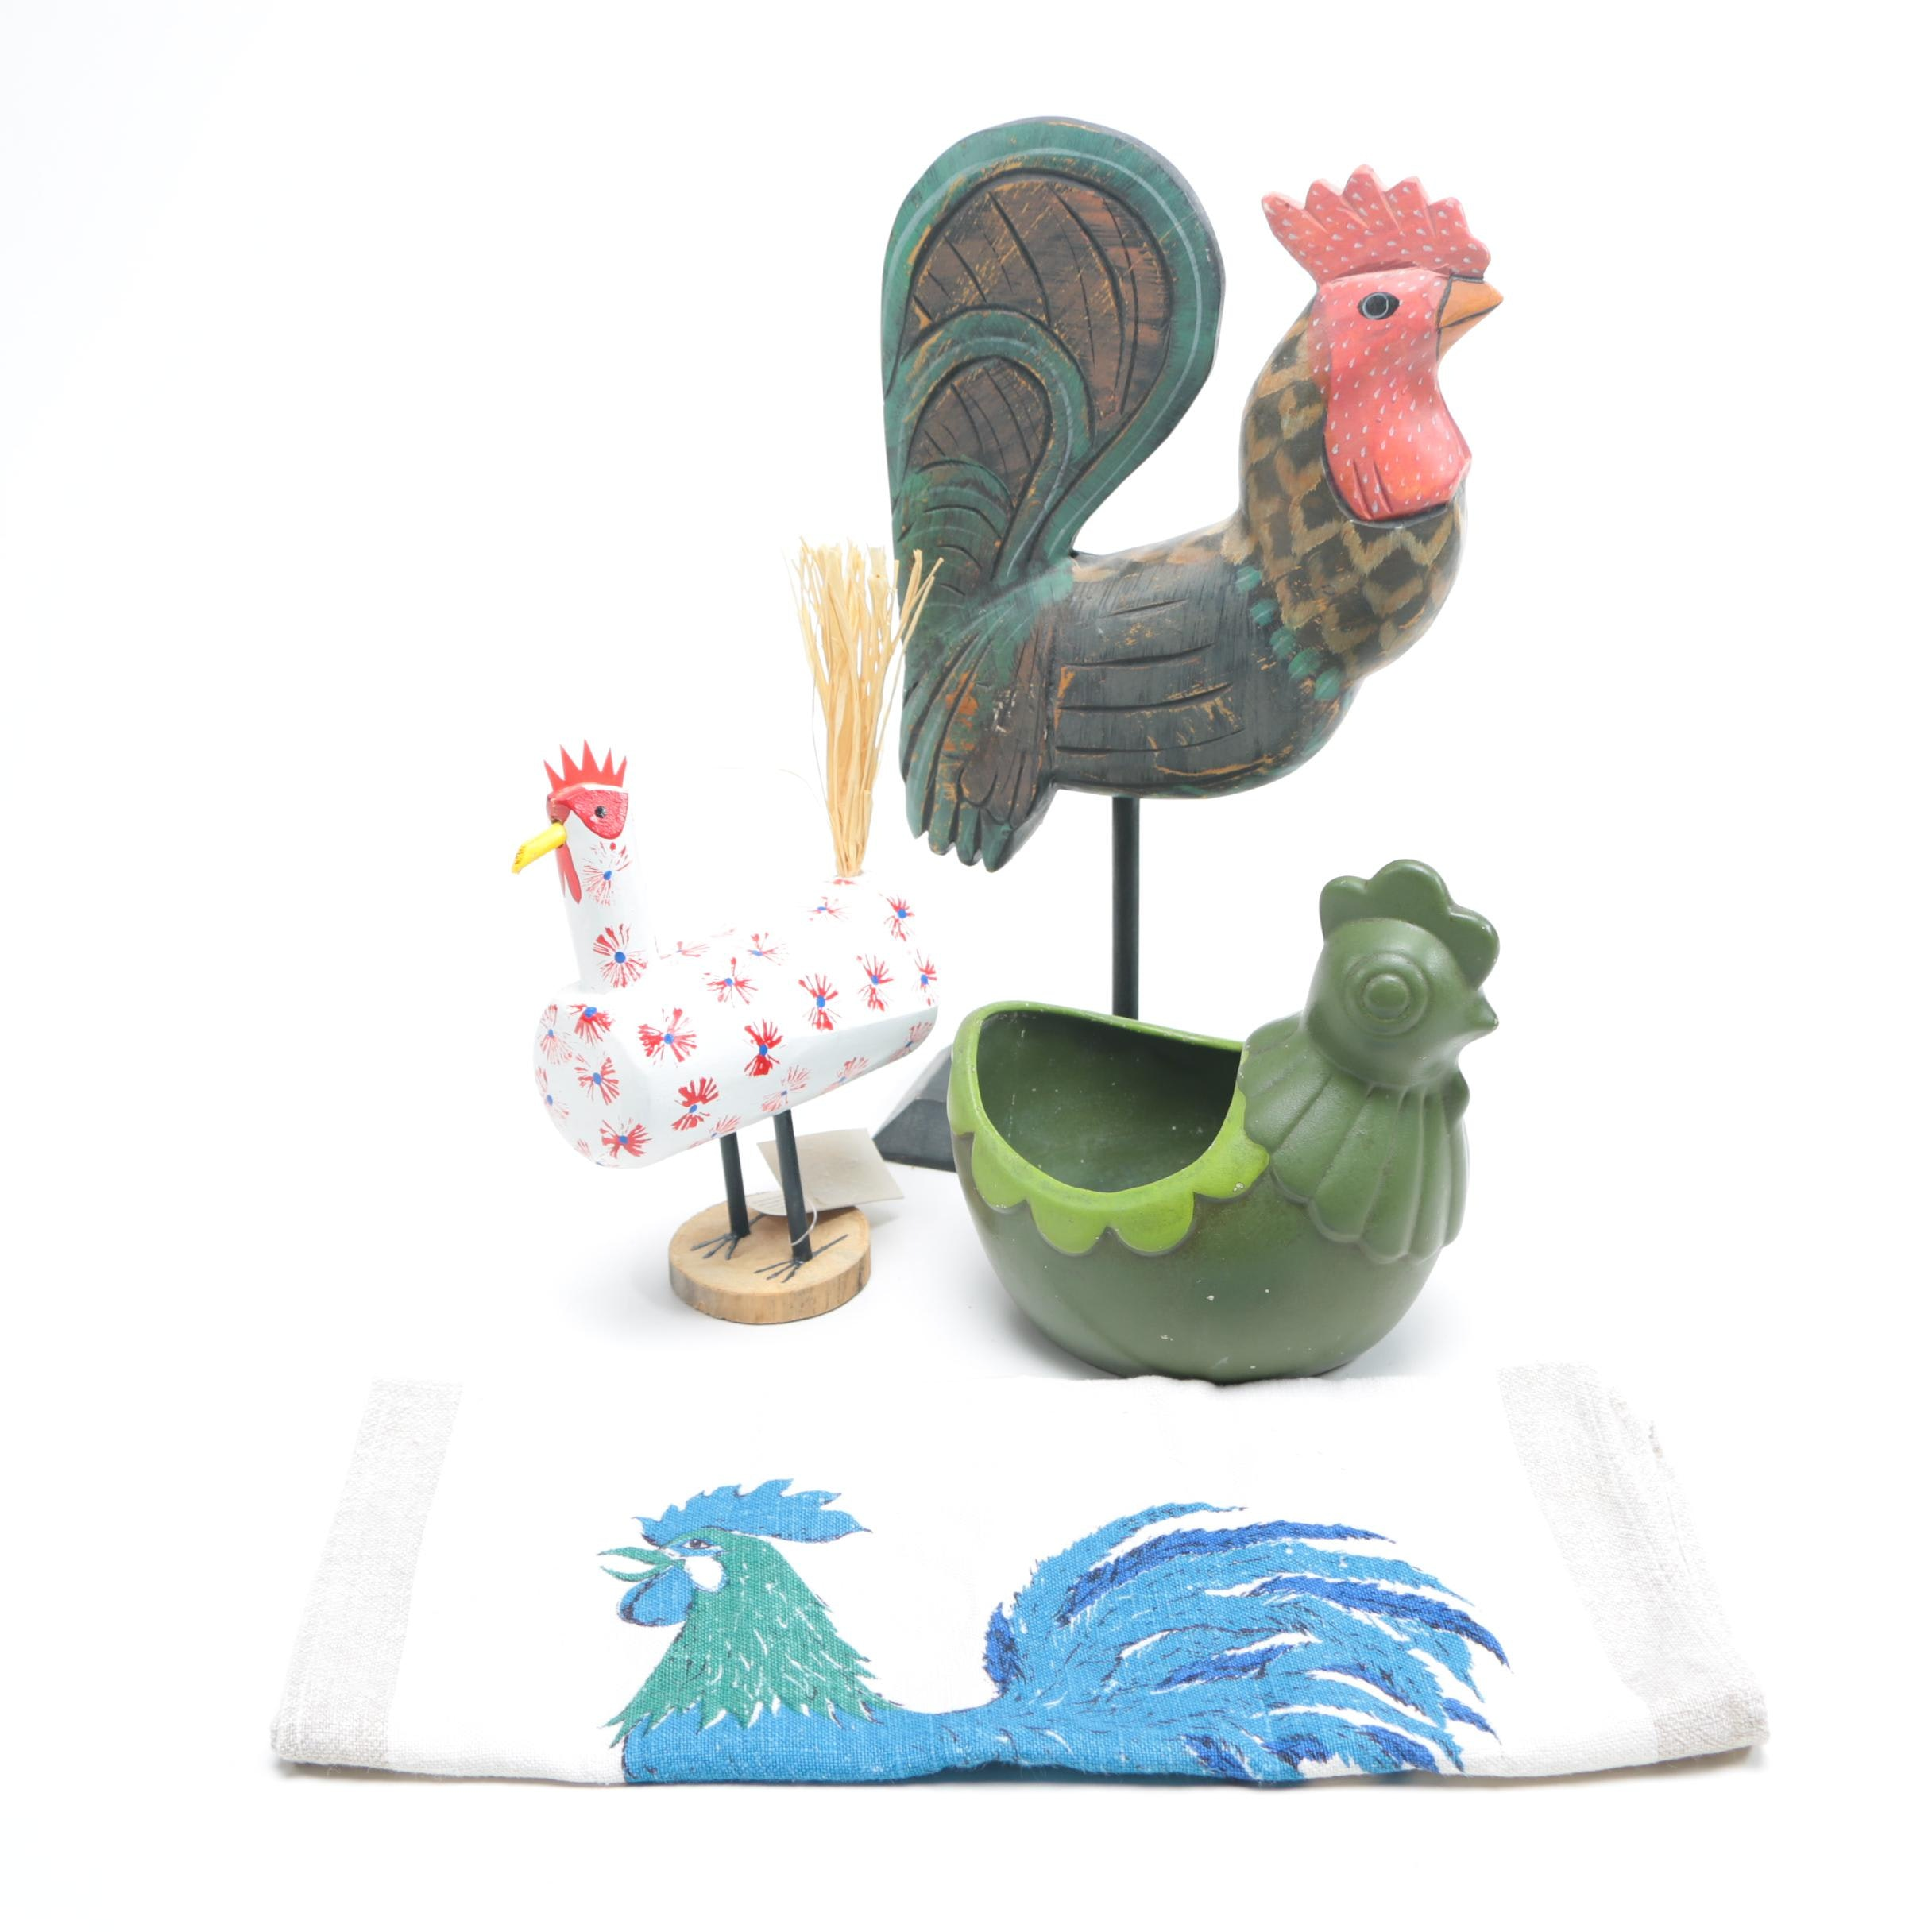 Rooster-Themed Collectibles Including Navajo Folk Art